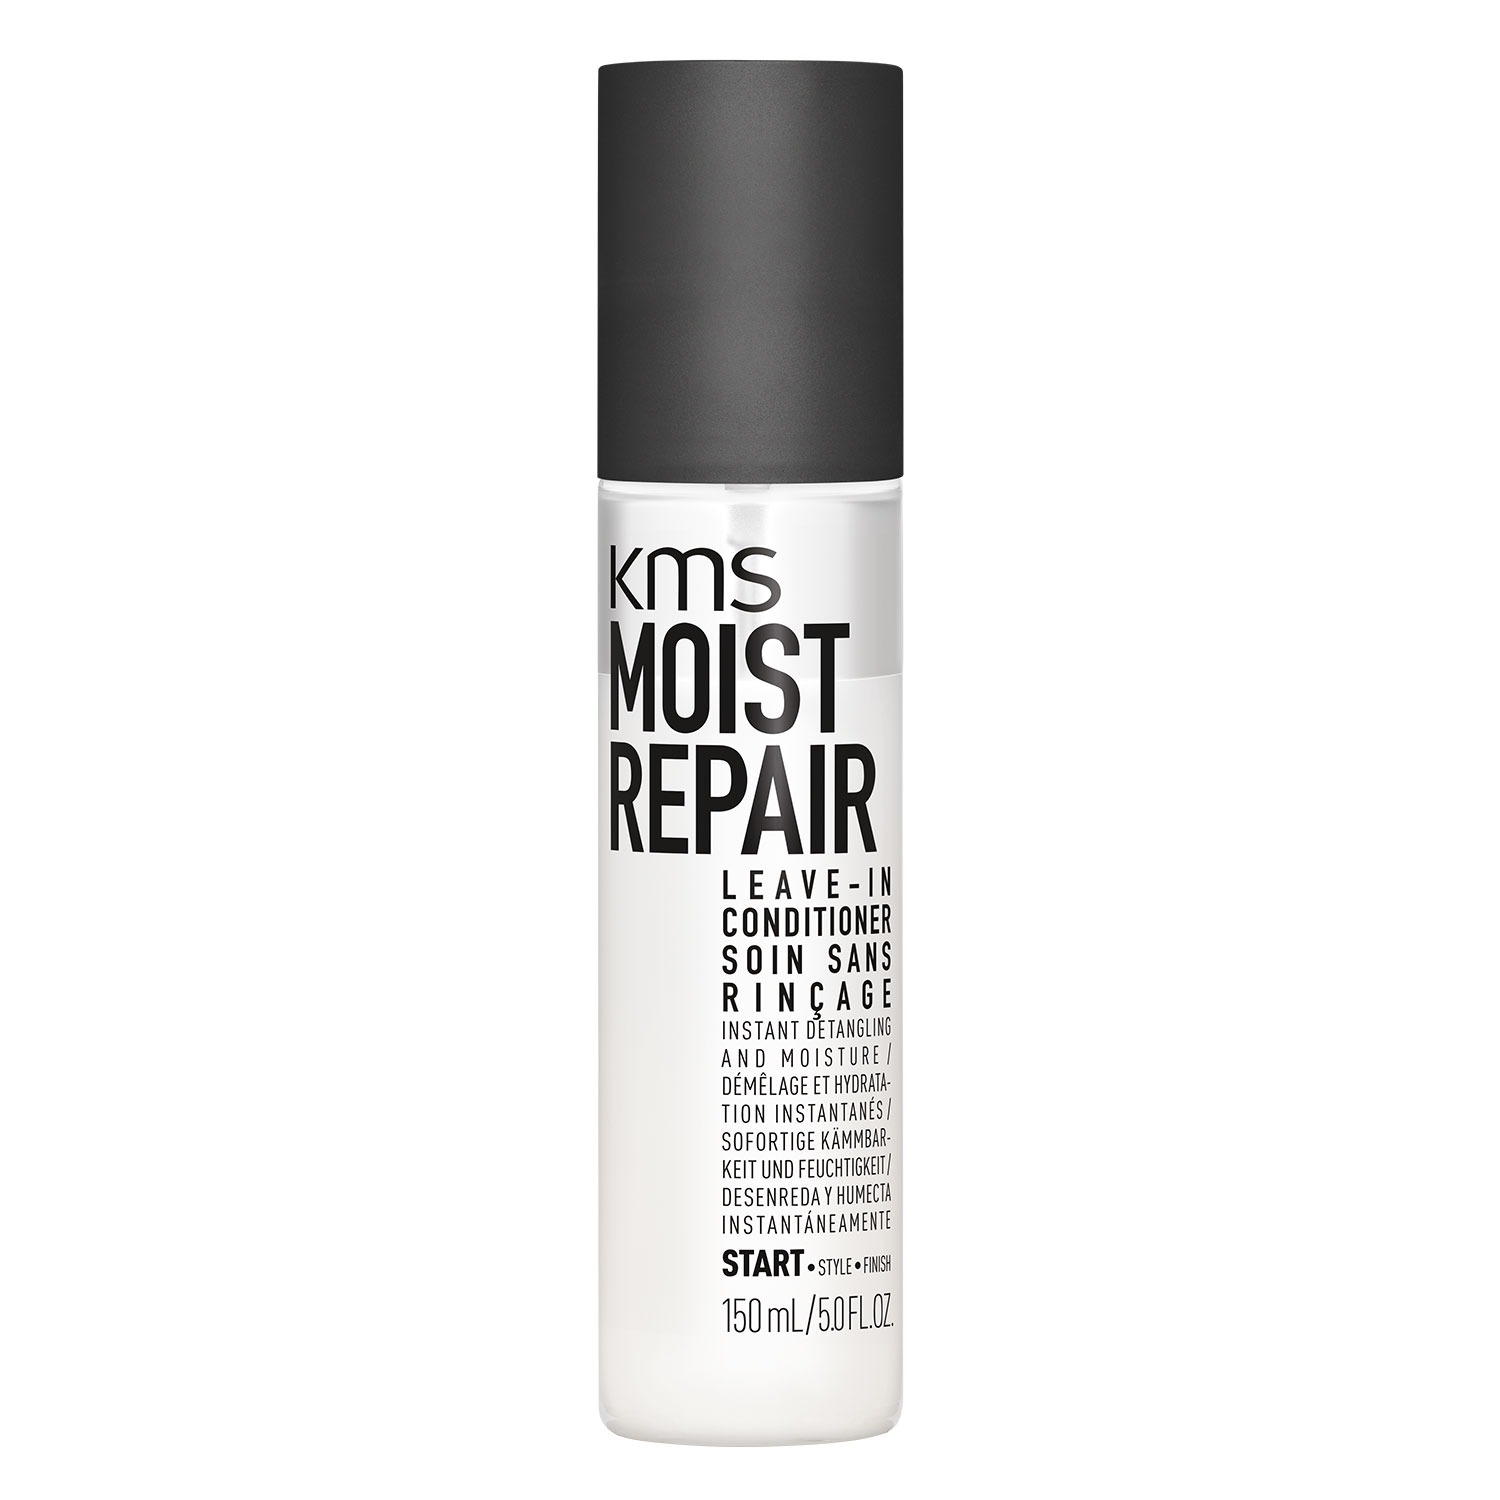 Moistrepair - Leave-In Conditioner Spray